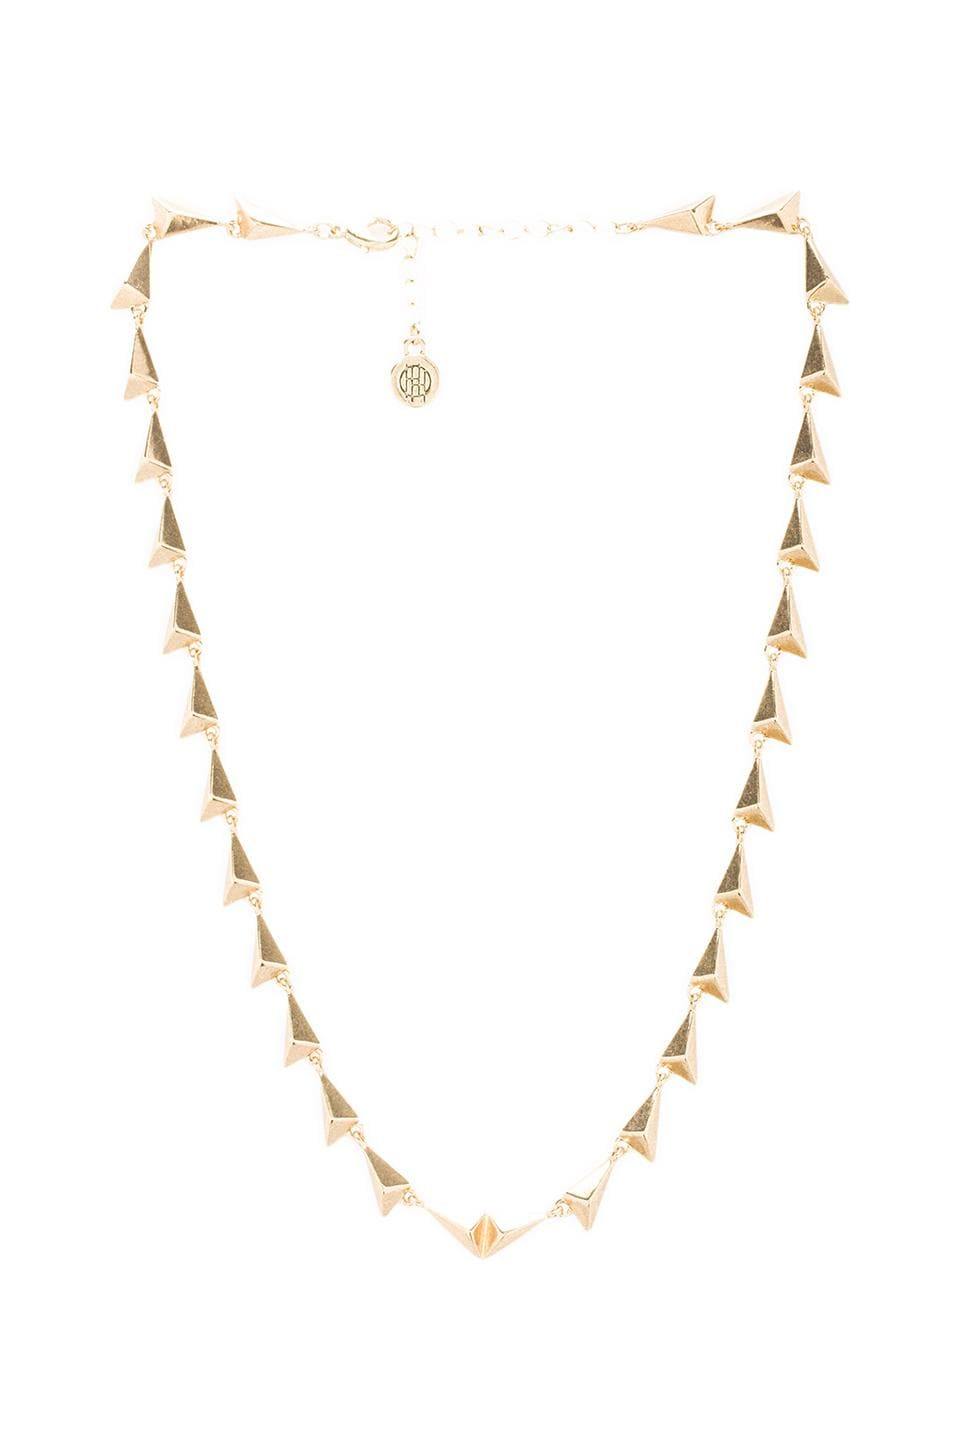 House of Harlow Dynamic Necklace in Gold